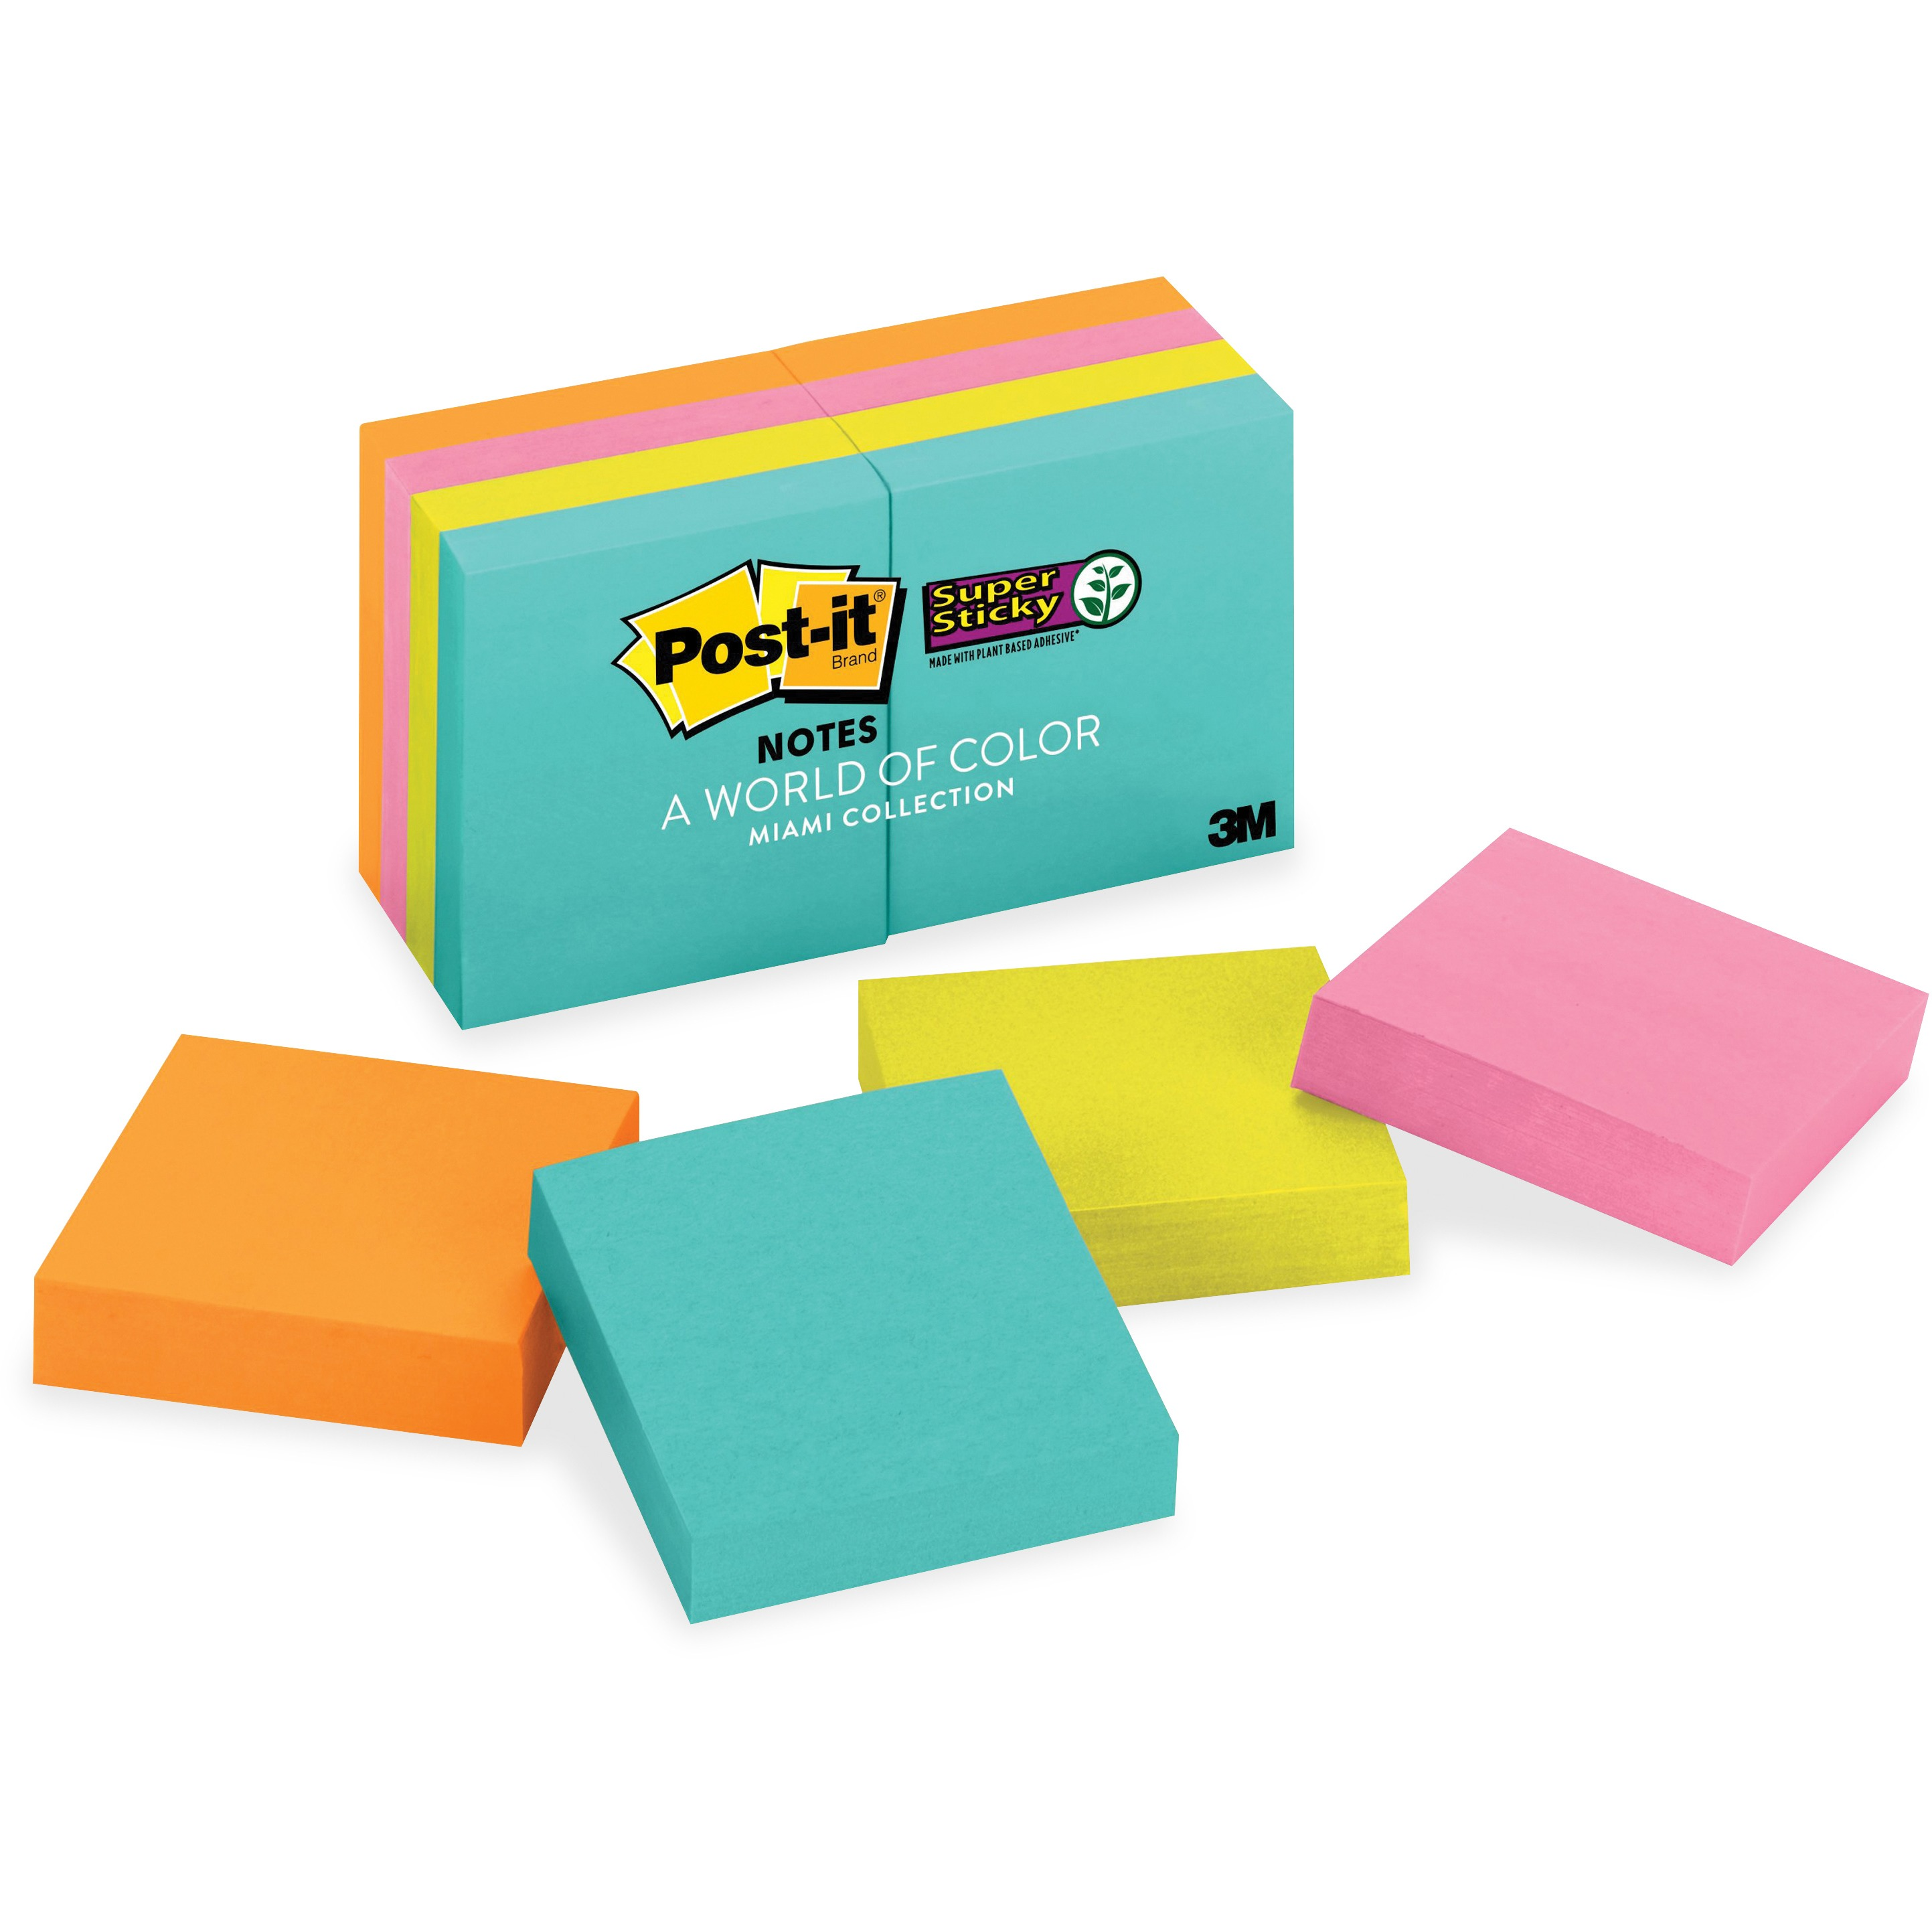 Post-it Super Sticky Notes 8 Pack, 2in. x 2in., Miami Collection